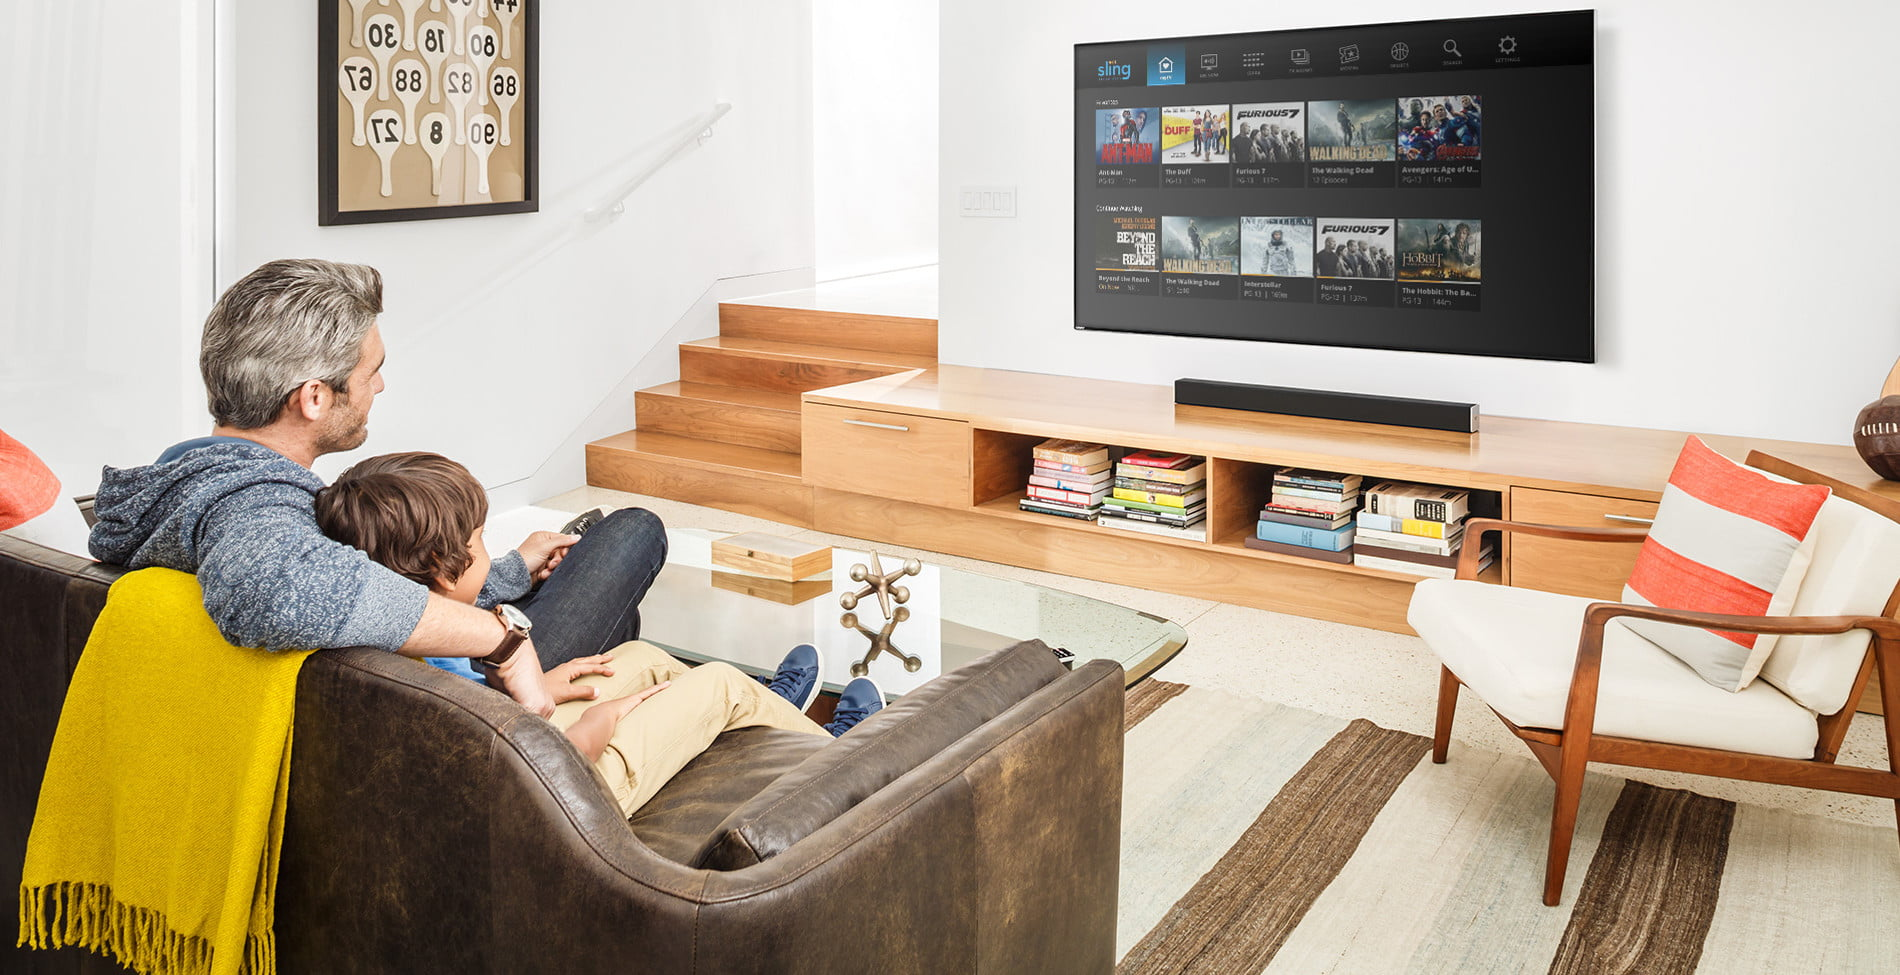 how to quit cable for online streaming video cord cutting